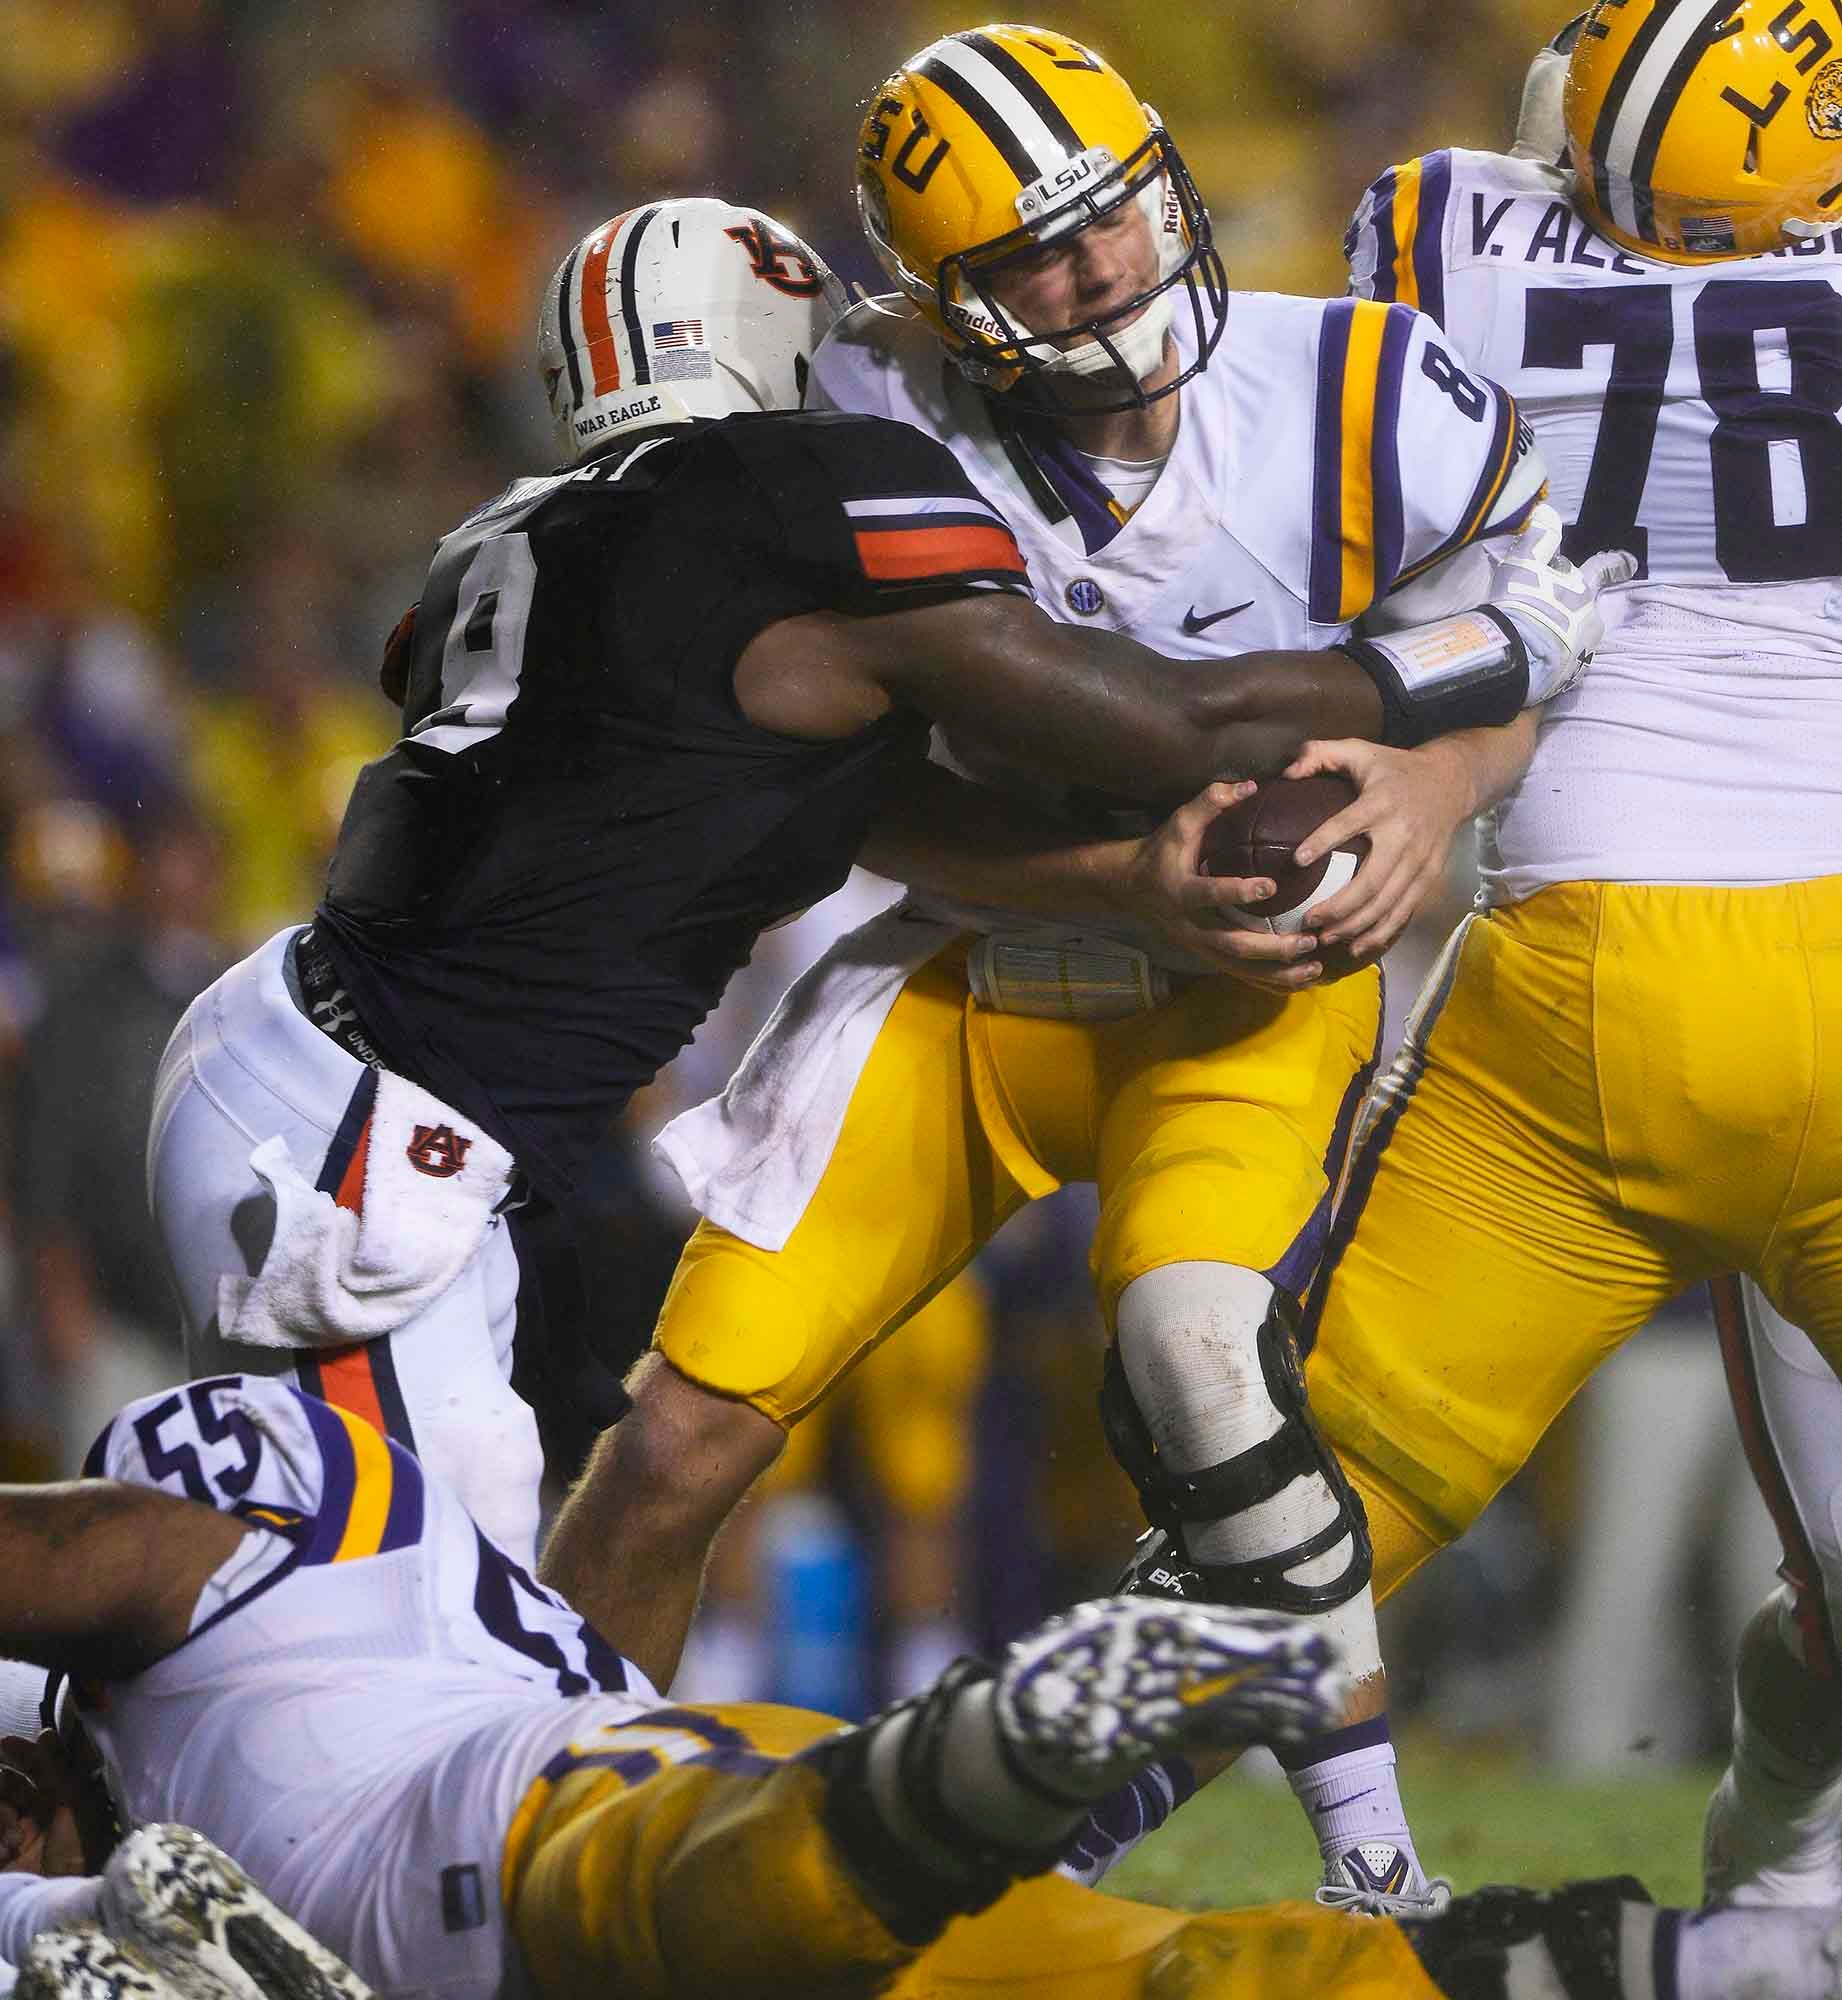 Auburn made some good plays against LSU, including this sack of quarterback Zach M